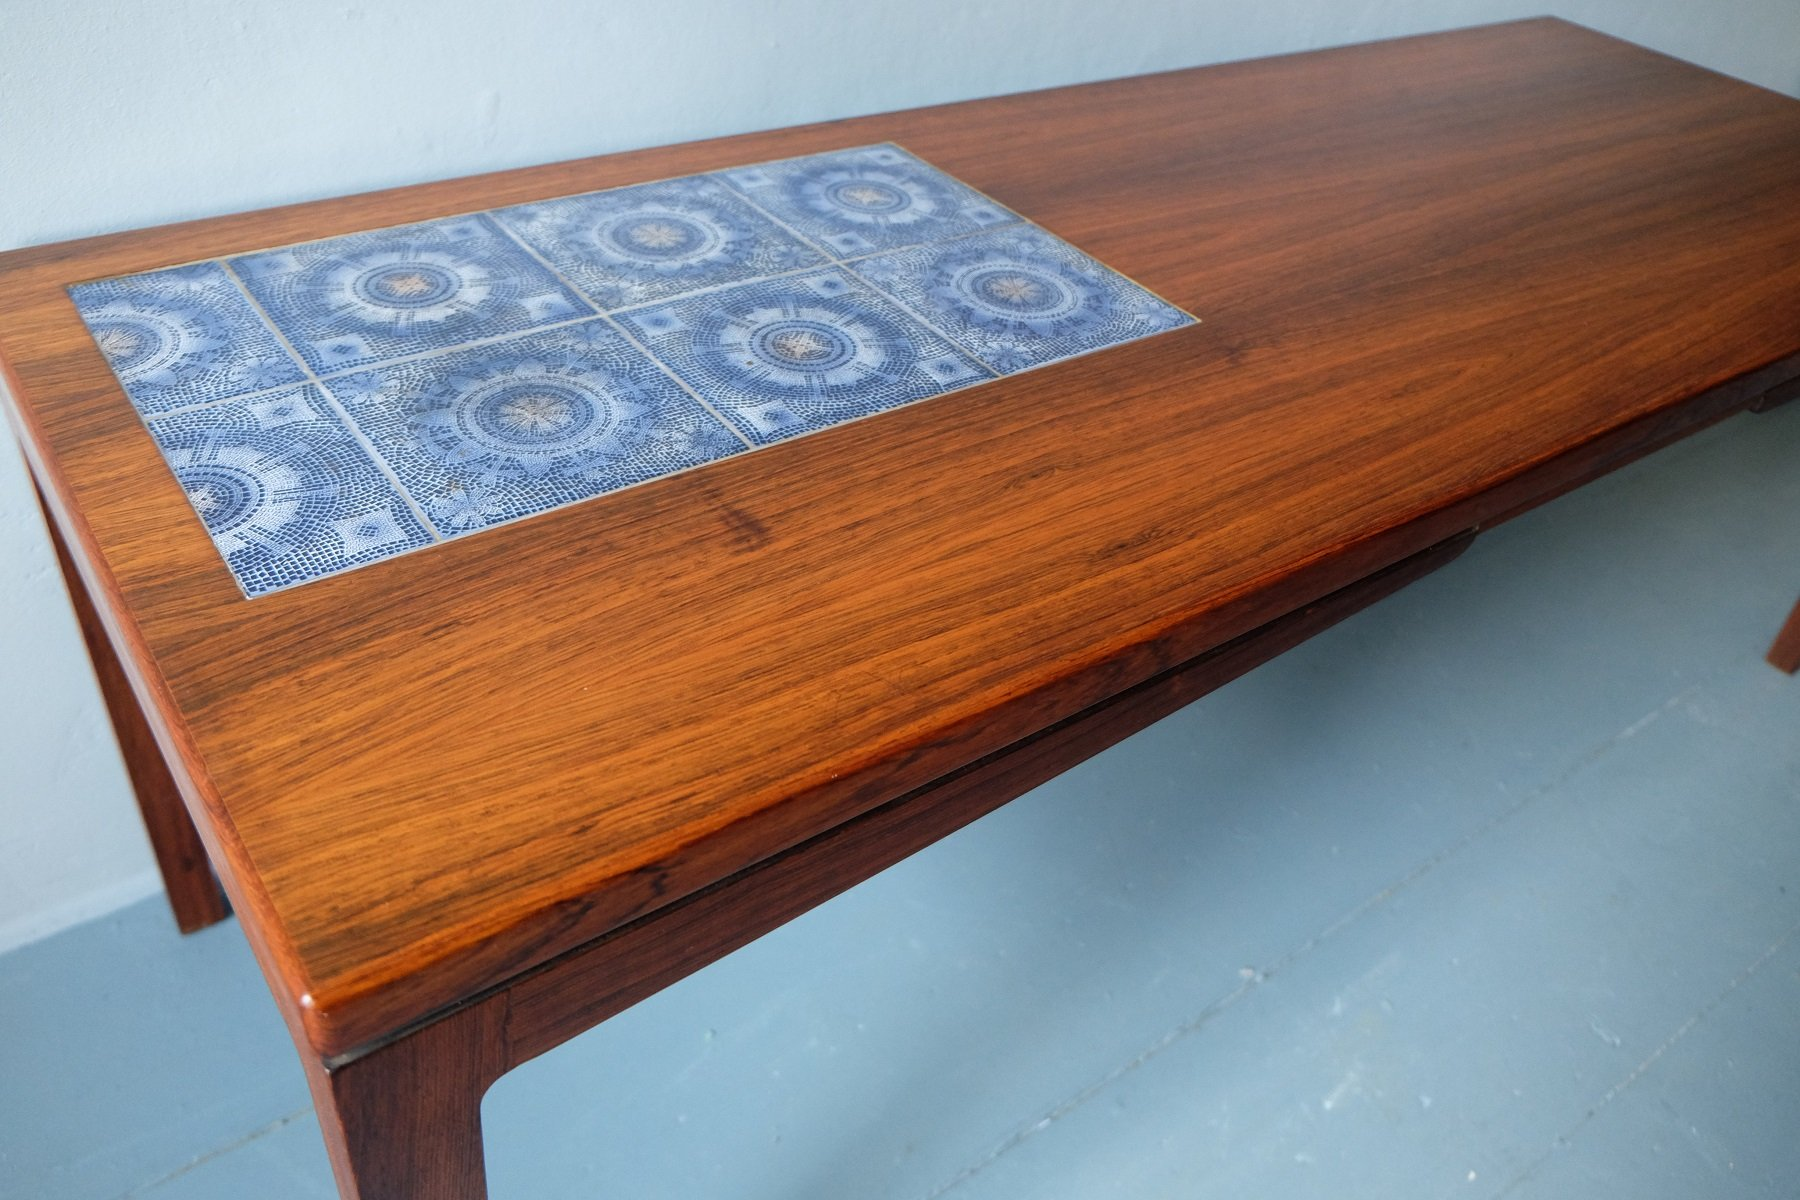 Danish Rosewood Coffee Table With Mosaic Ceramic Tiles, 1960s